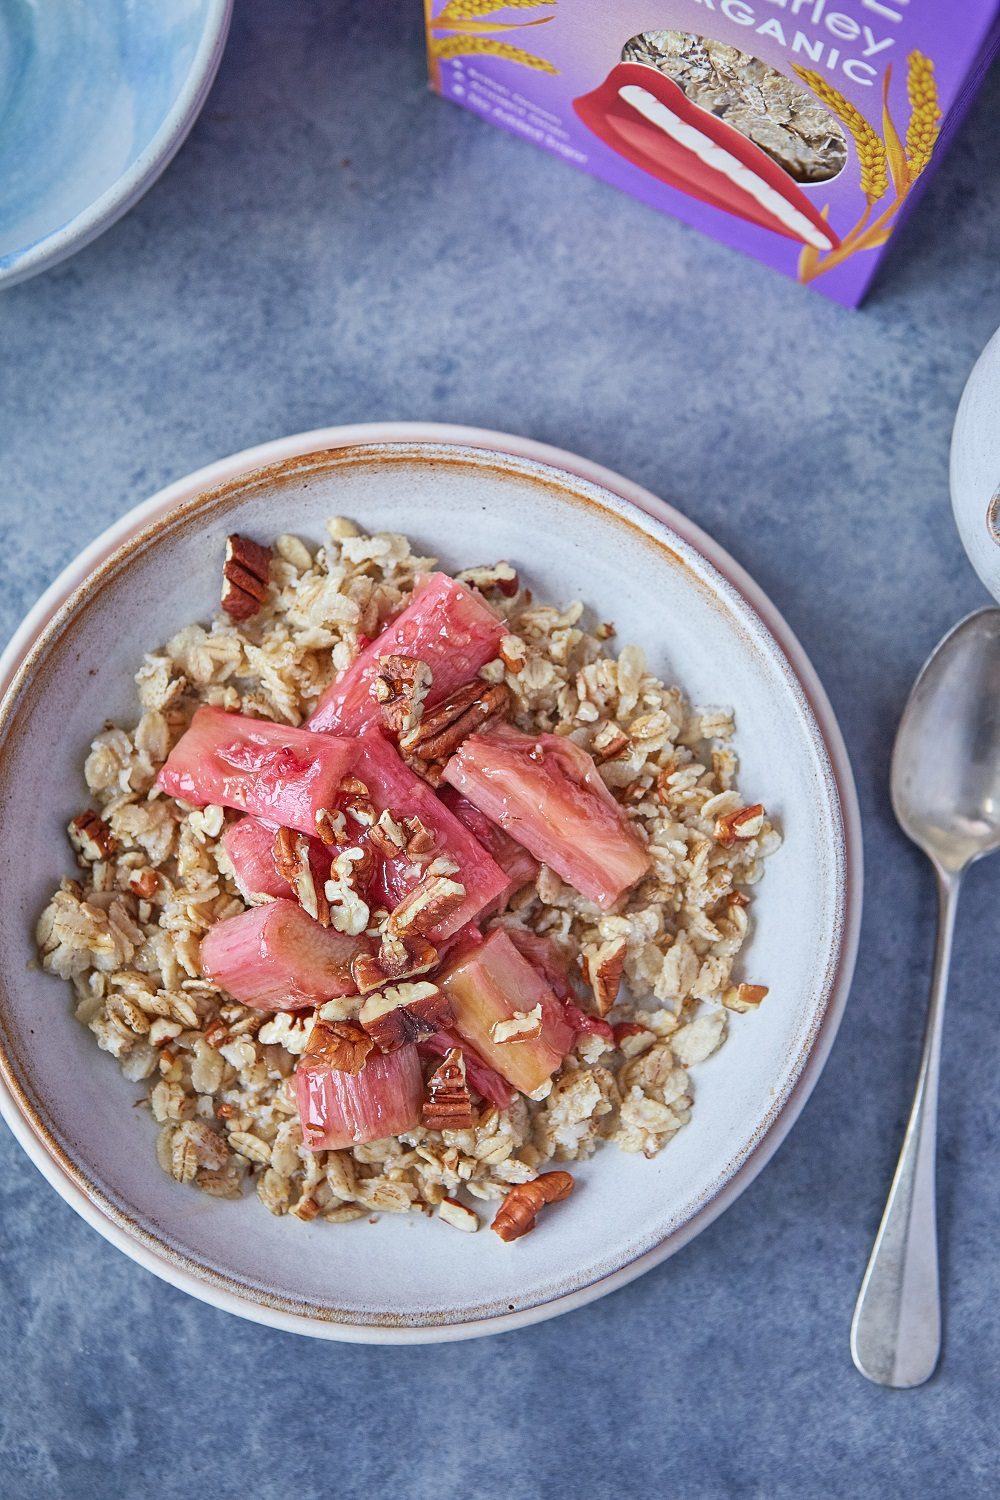 Naked Barley Porridge With Maple Rhubarb And Pecans